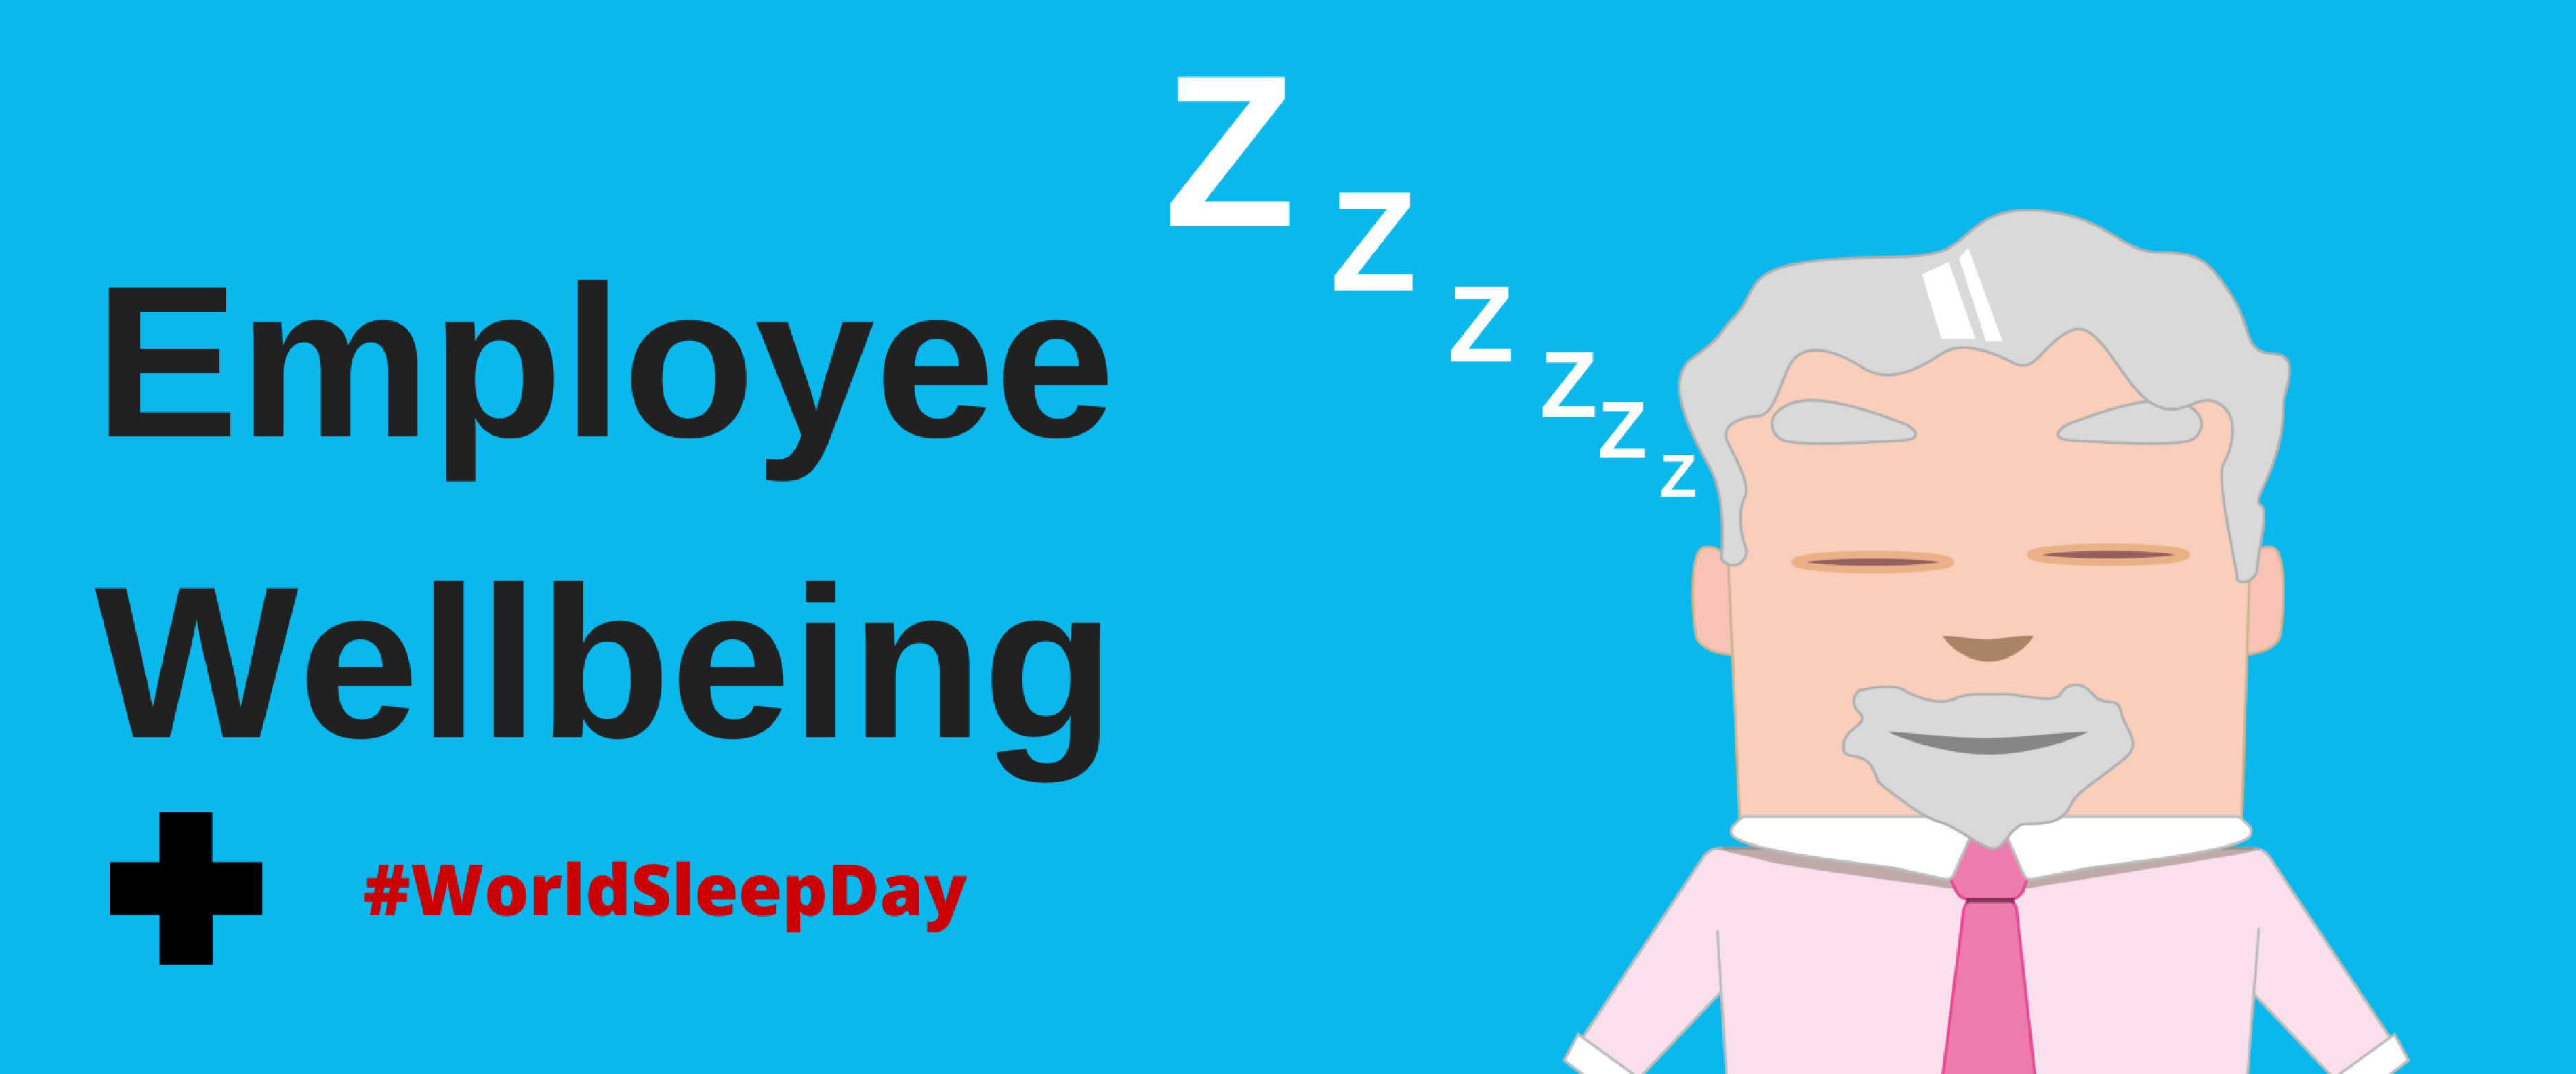 World Sleep Day Staff Wellbeing